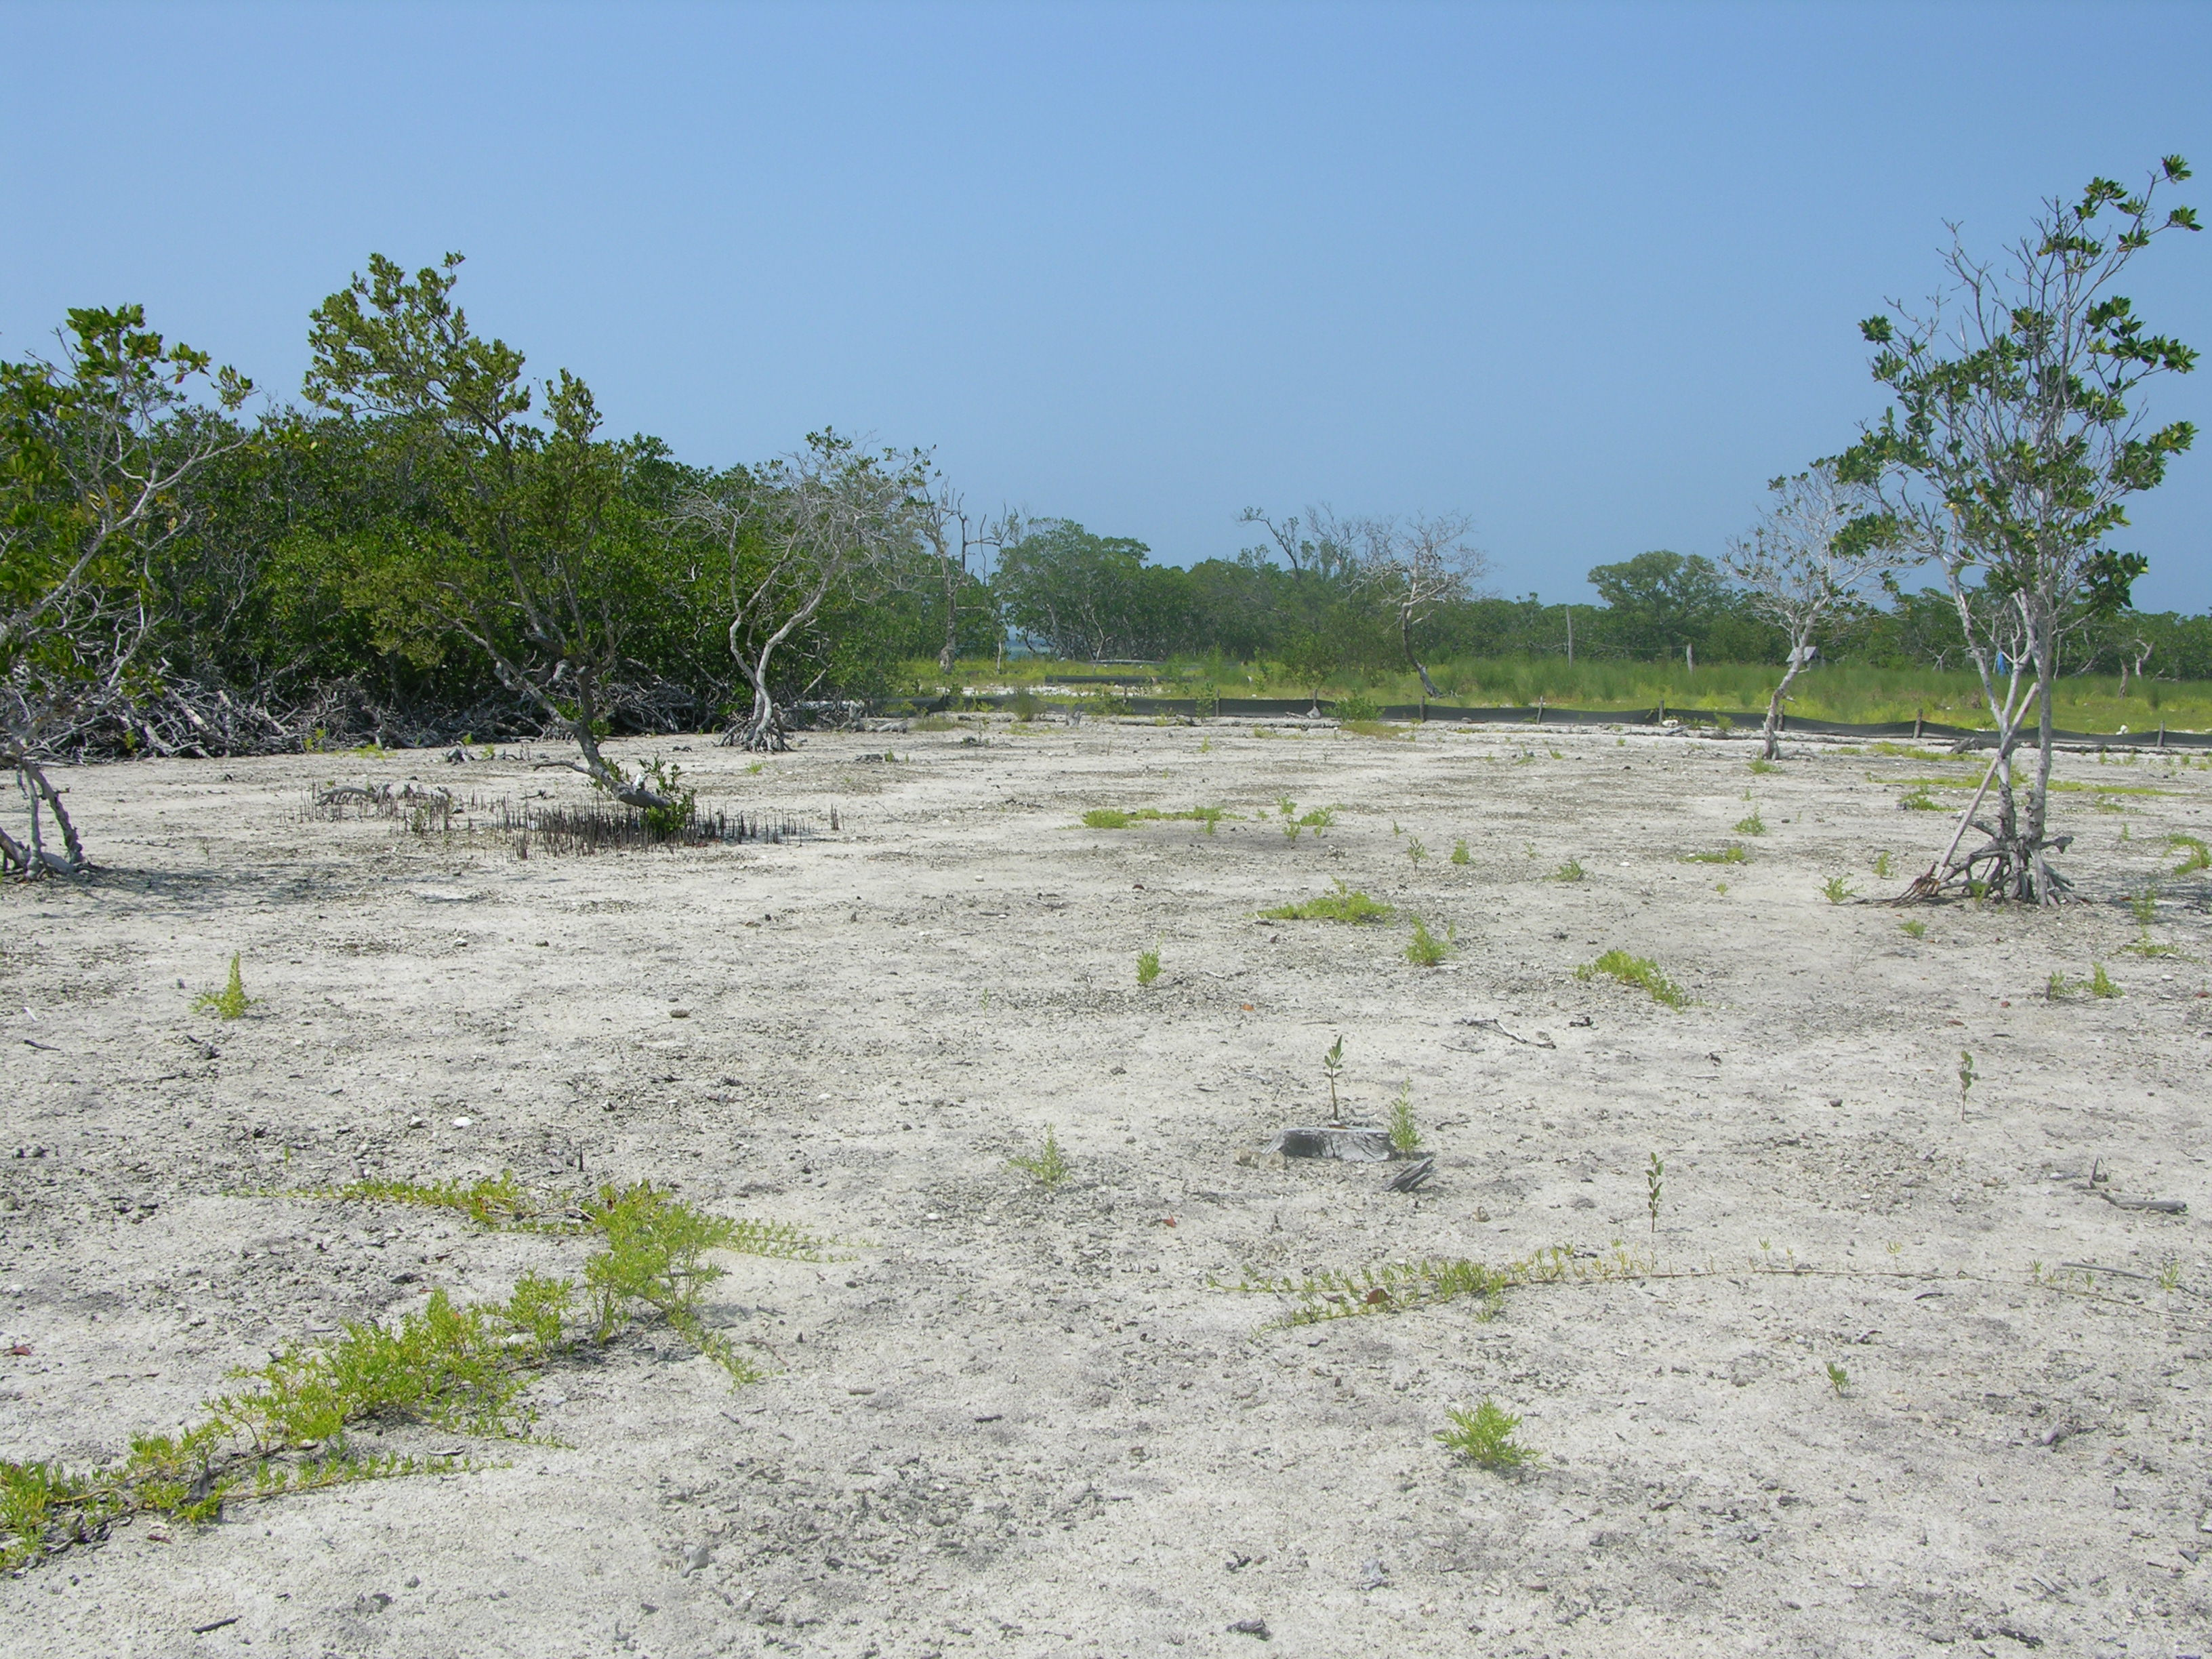 This mangrove island in Belize was cleared and dredged to create sand beaches.<div class='credit'><strong>Credit:</strong> This mangrove island in Belize was cleared and dredged to create sand beaches.</div>